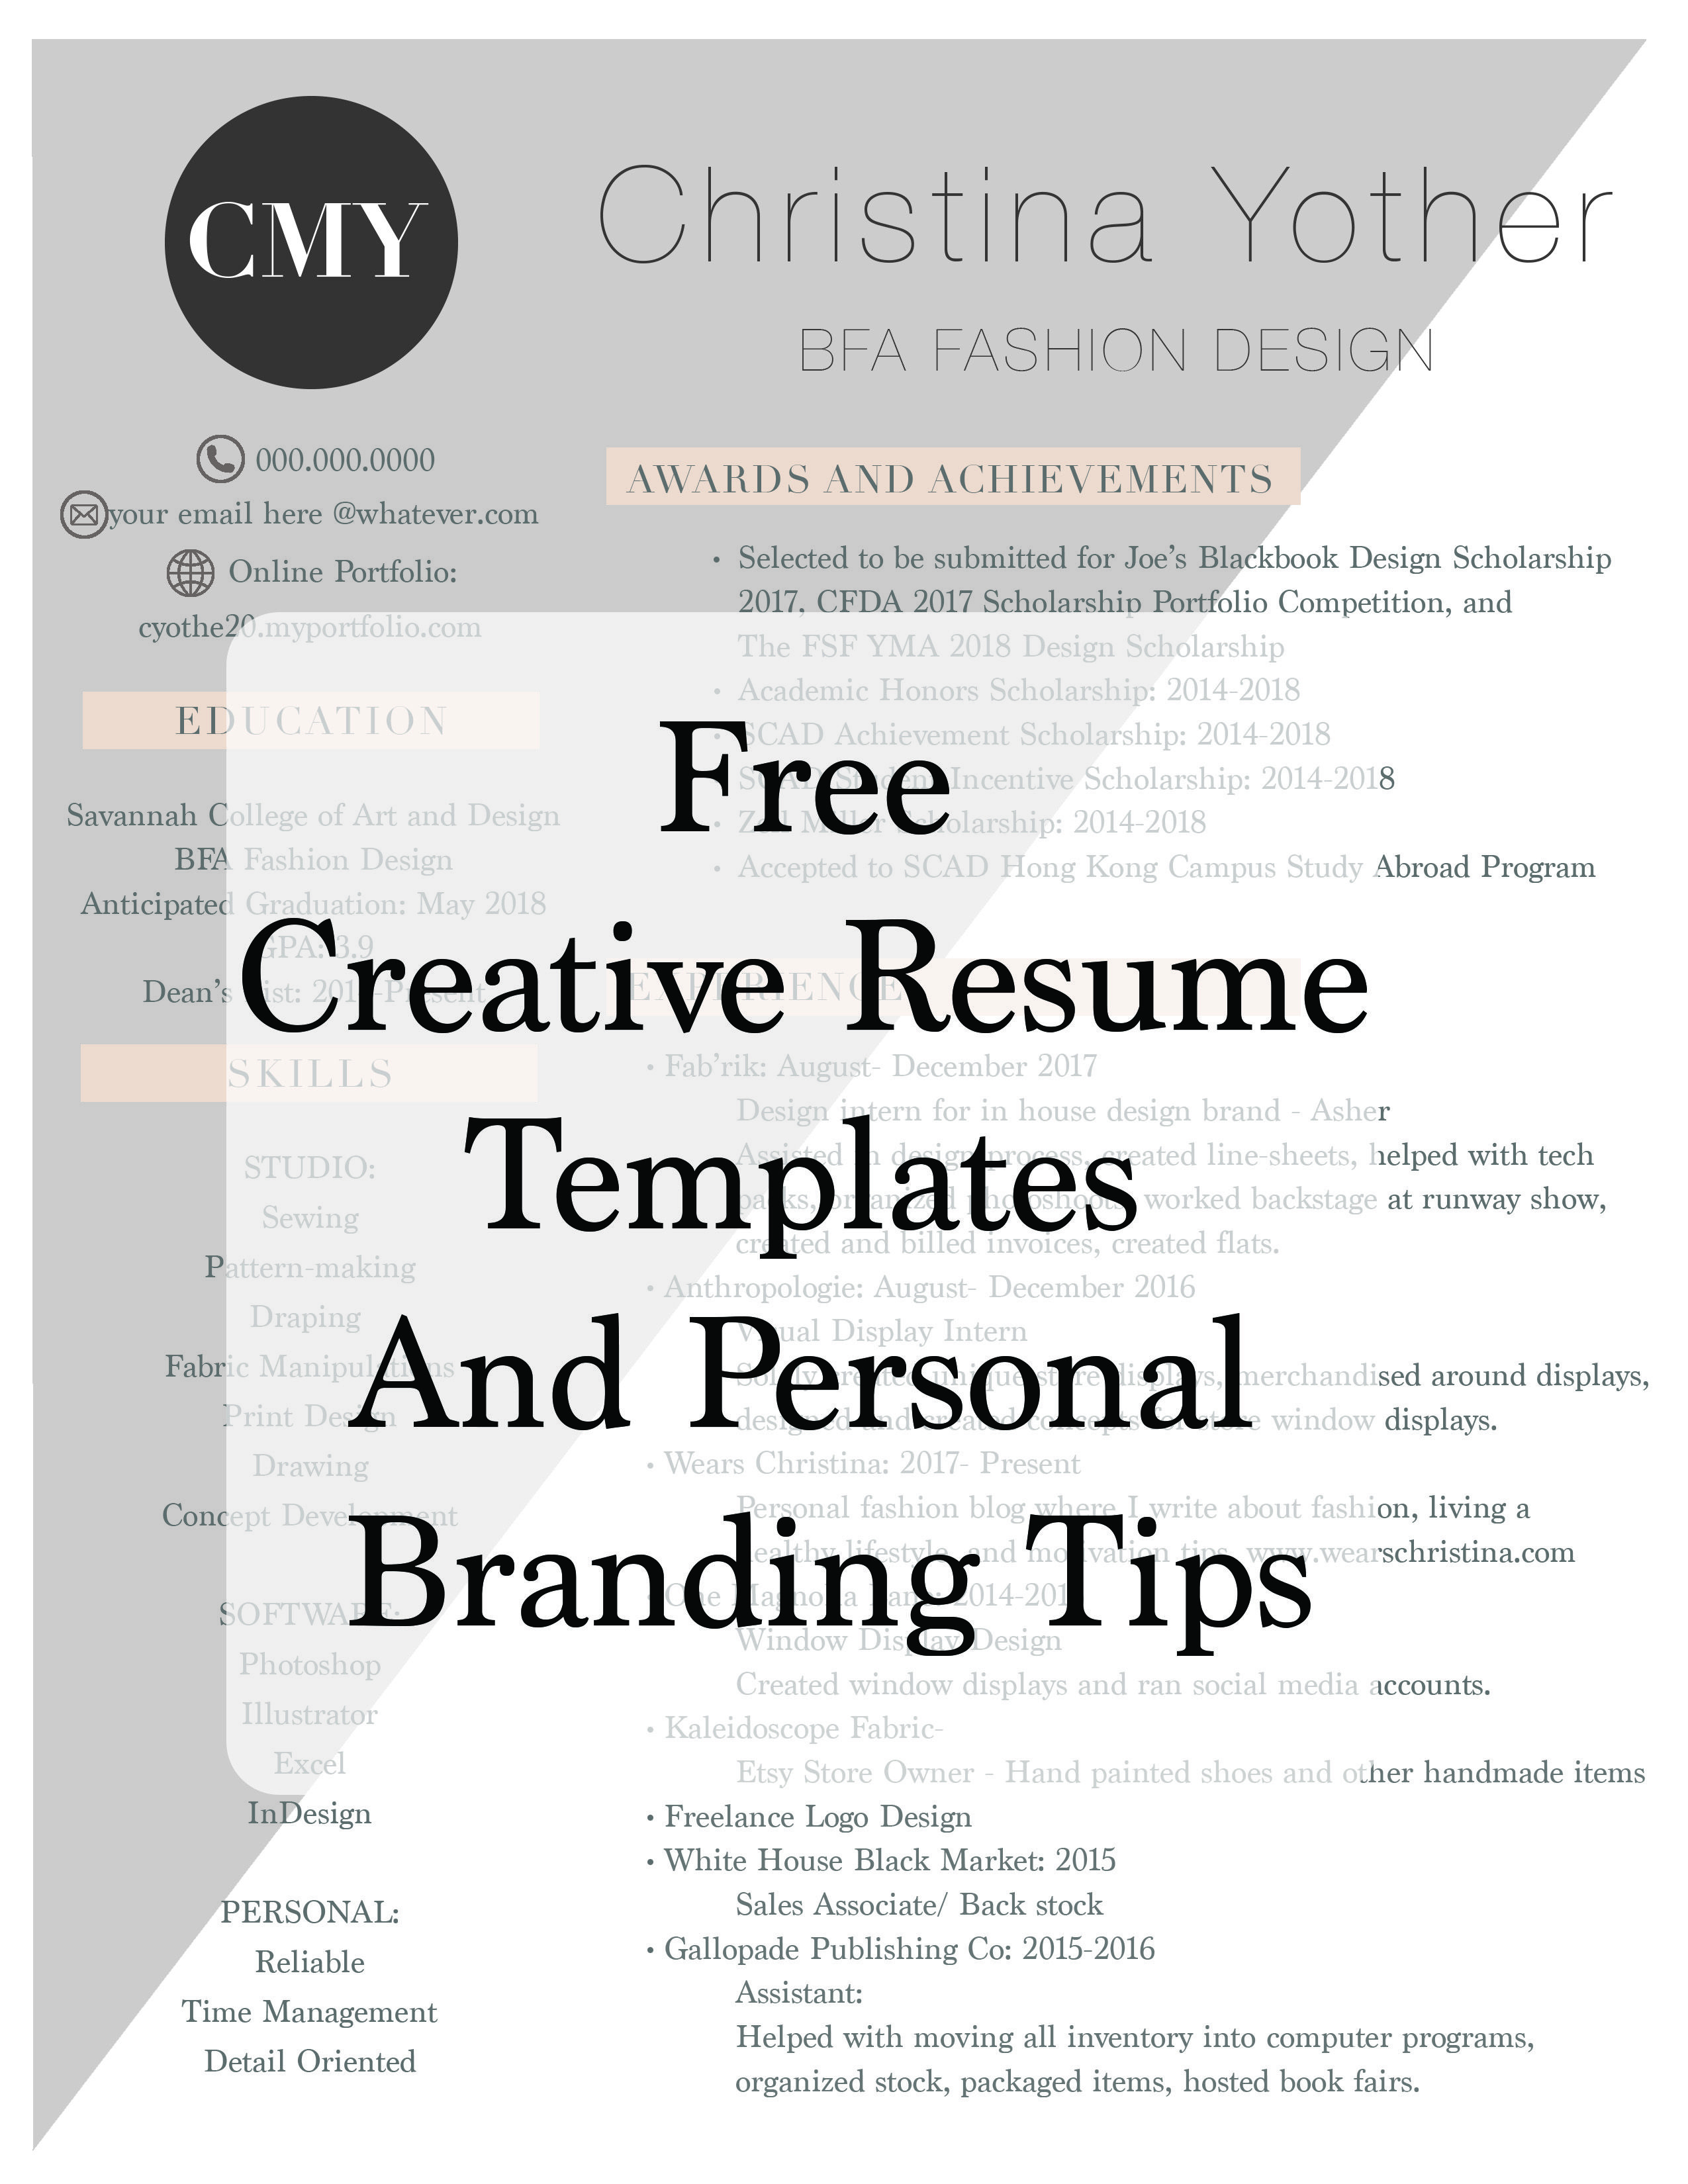 Free Creative Resume Templates And Personal Branding Tips How To